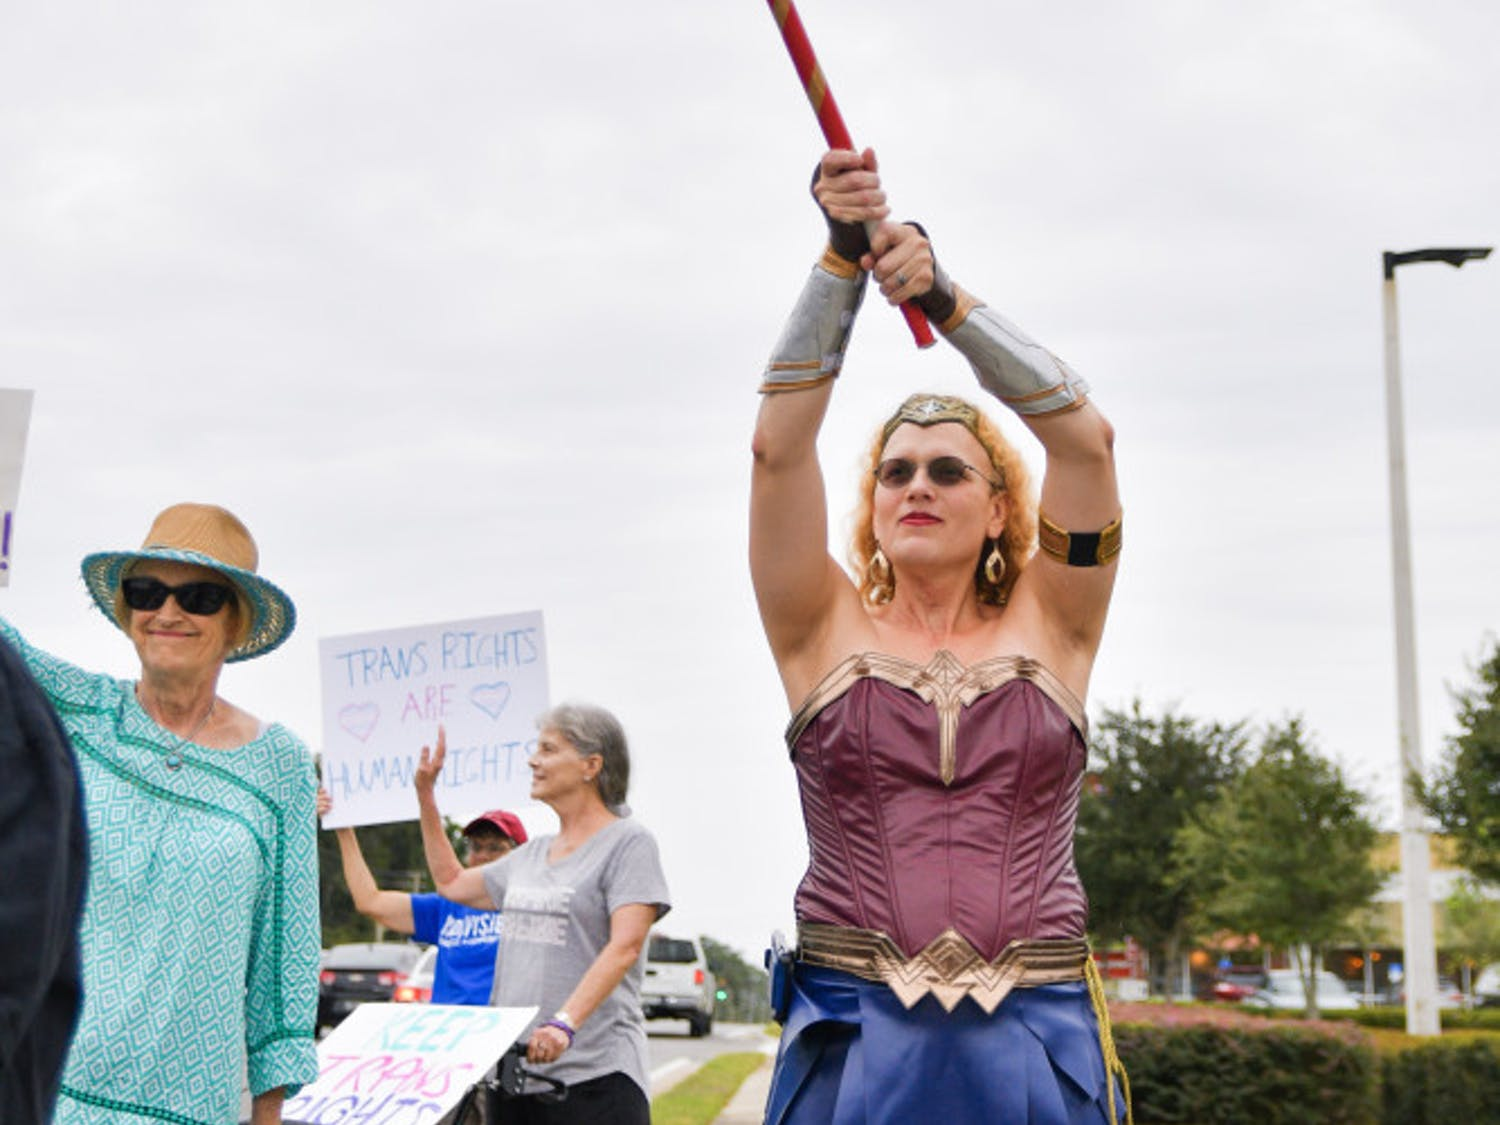 """Melina Rayna Svanhild Farley-Barratt, a 39-year-old Gainesville activist, waves a transgender flag during the """"Won't Be Erased!"""" rally Tuesday afternoon. The Trans Rights Action Committee hosted the event outside Hobby Lobby as a response to President Trump's statement recently about eliminating the status of transgender and having a person's sex be determined at birth. The Hobby Lobby was chosen as the location due to its public stance against the LGBTQ+ community."""